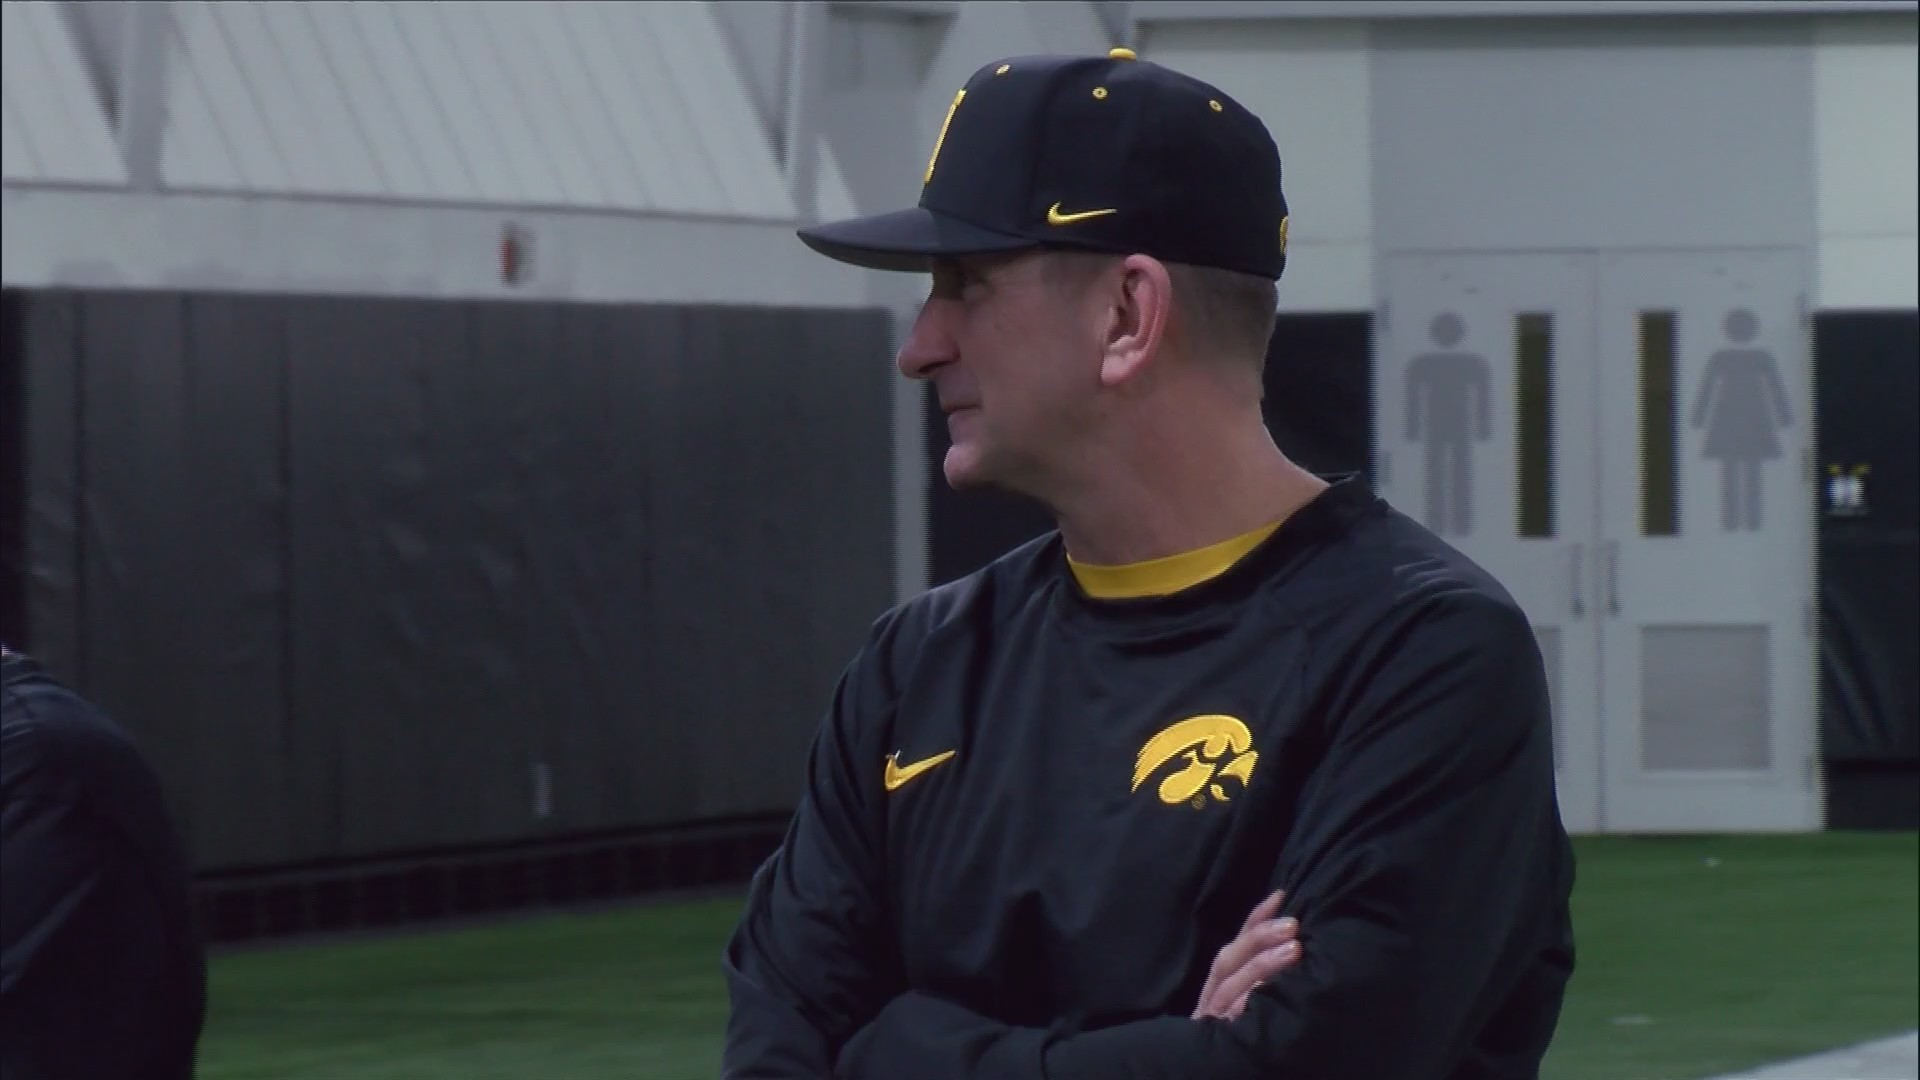 Lineup will have a new look for Iowa baseball